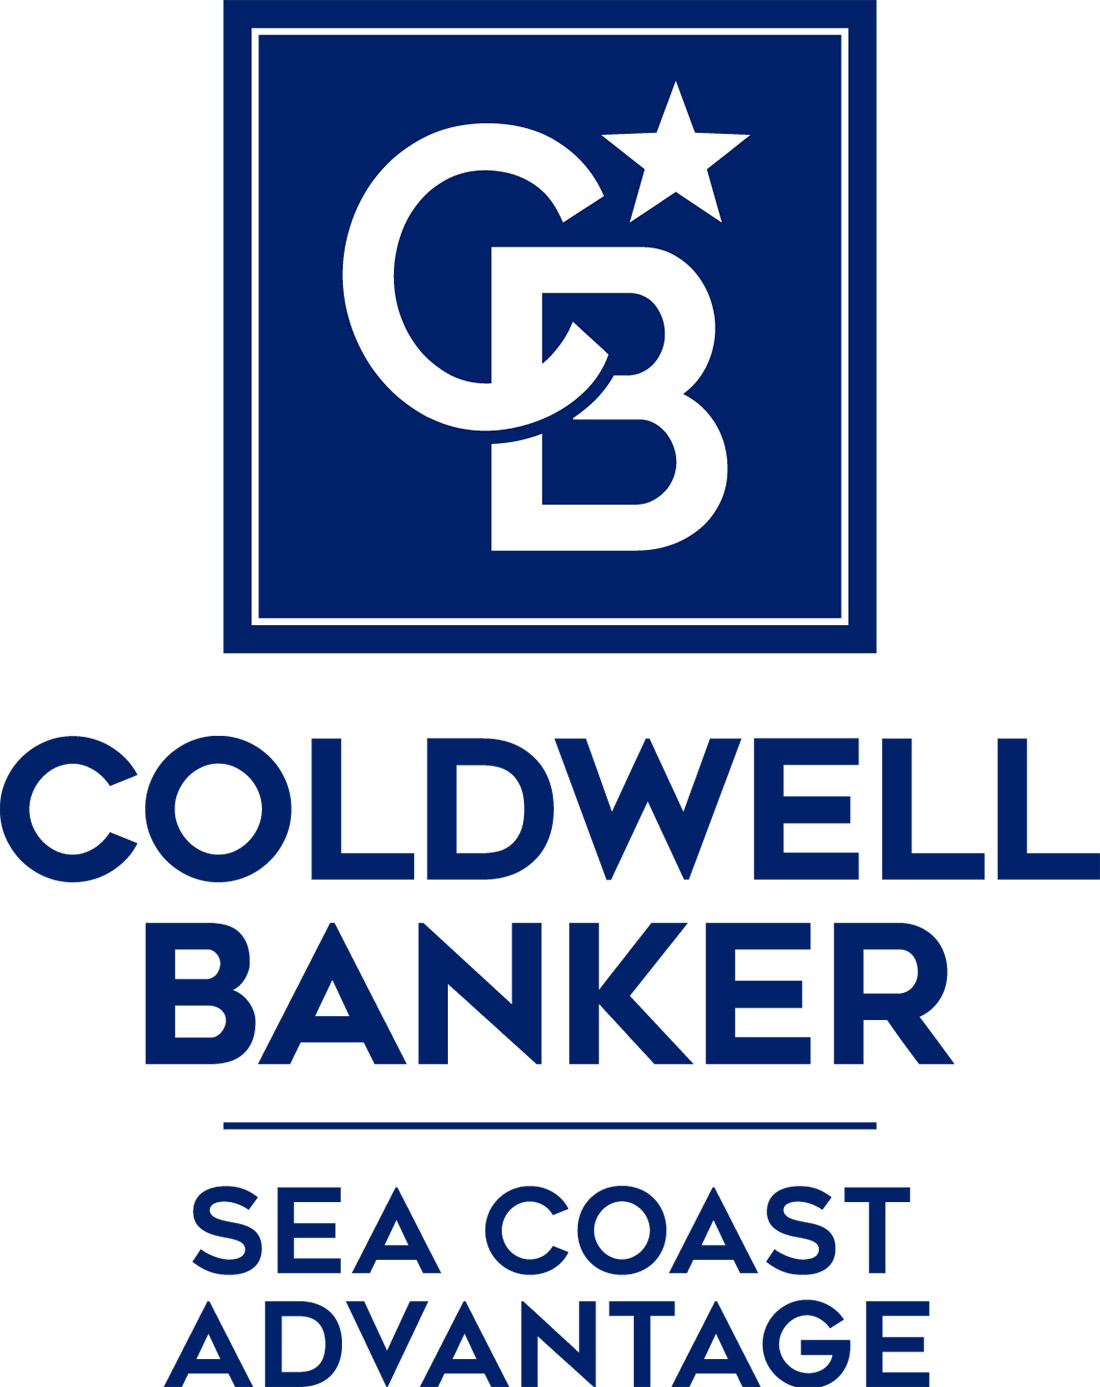 Frances Warner - Coldwell Banker Sea Coast Advantage Realty